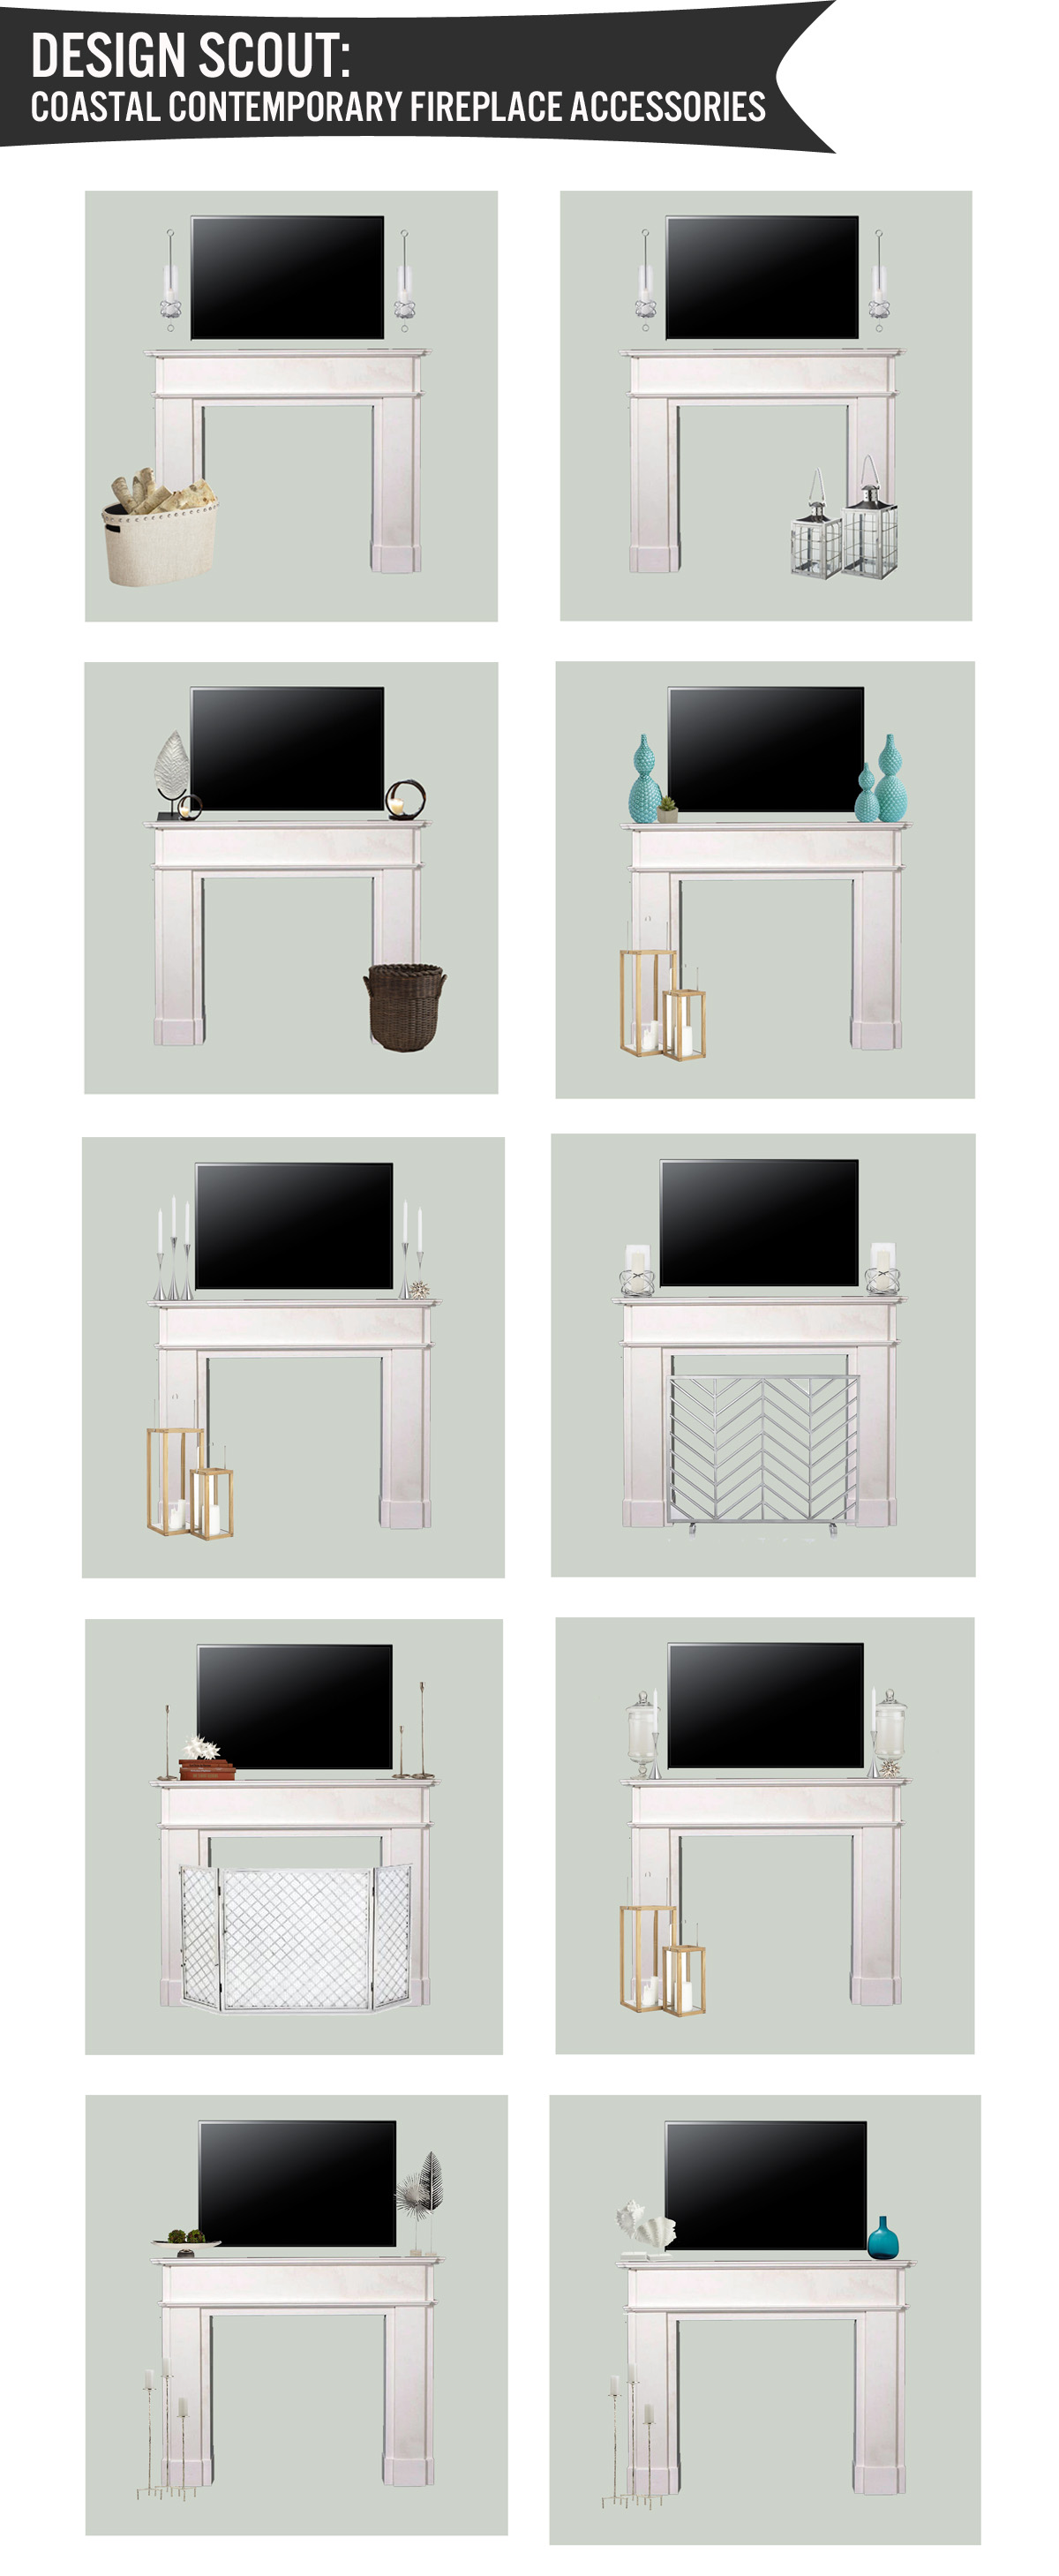 Design Scout: Coastal Contemporary Fireplace Accessories | The ...